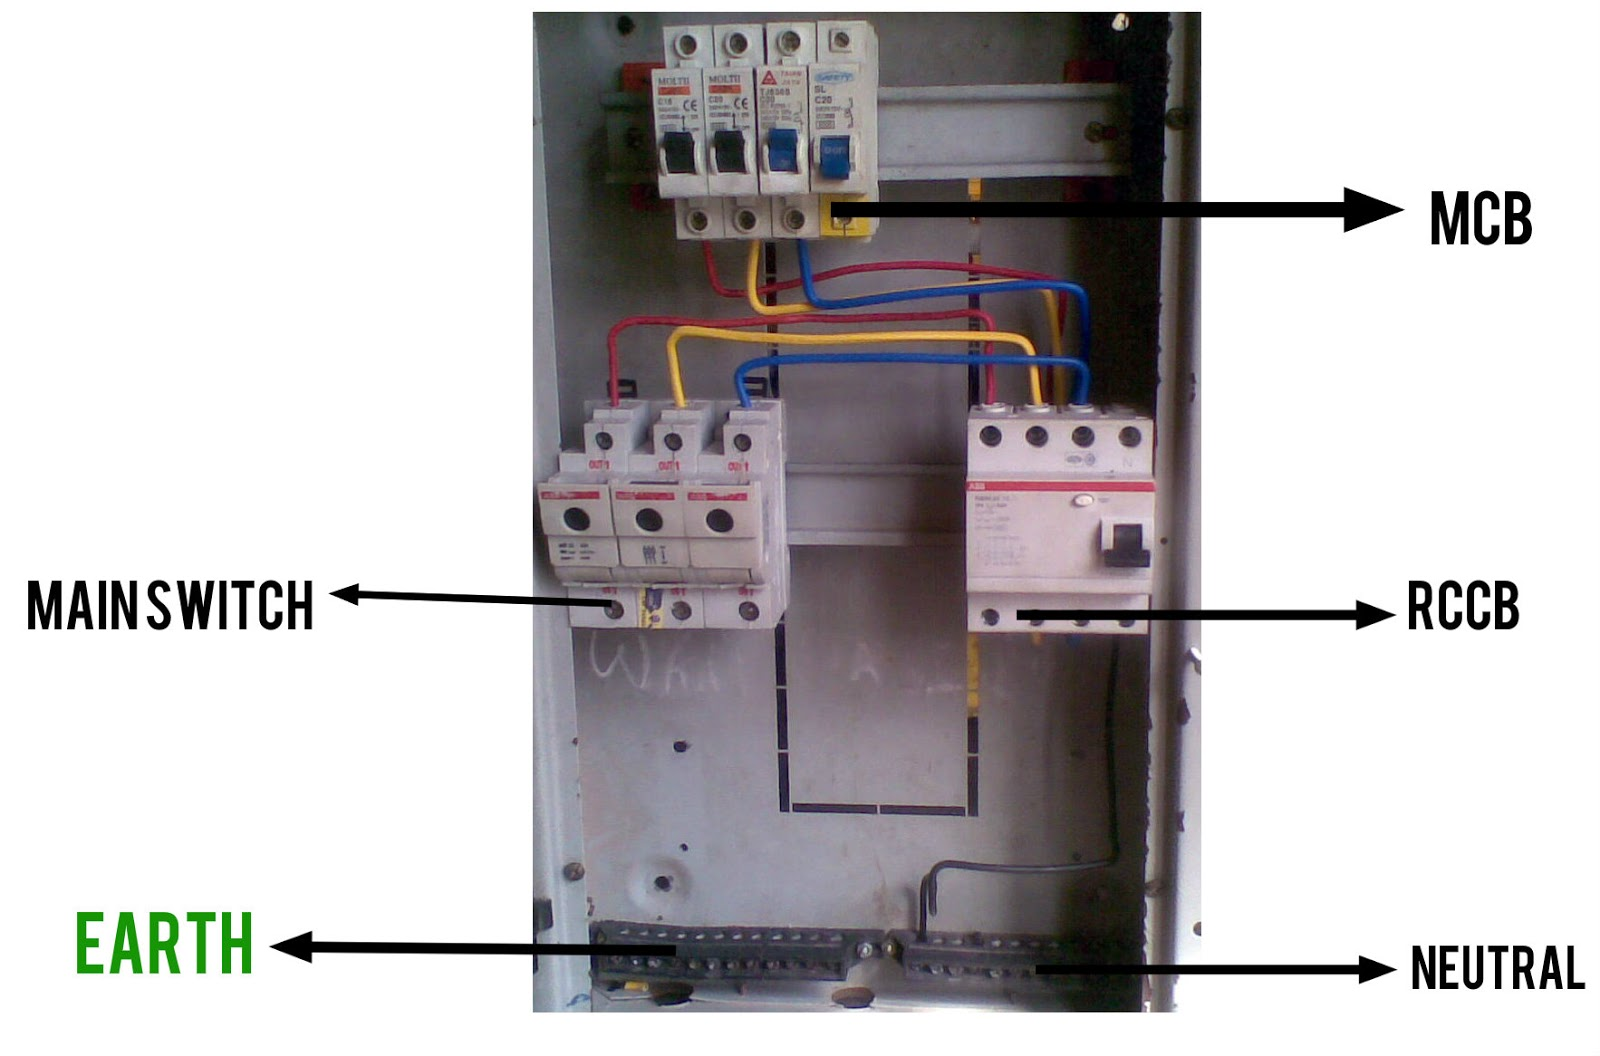 3 phase power hookup 115v connections, 1 phase 333211-01 electric chain hoist wiring diagrams 1 phase, 115/230 volt reconnectable 1 phase 1 phase, 115/230 volt reconnectable,.